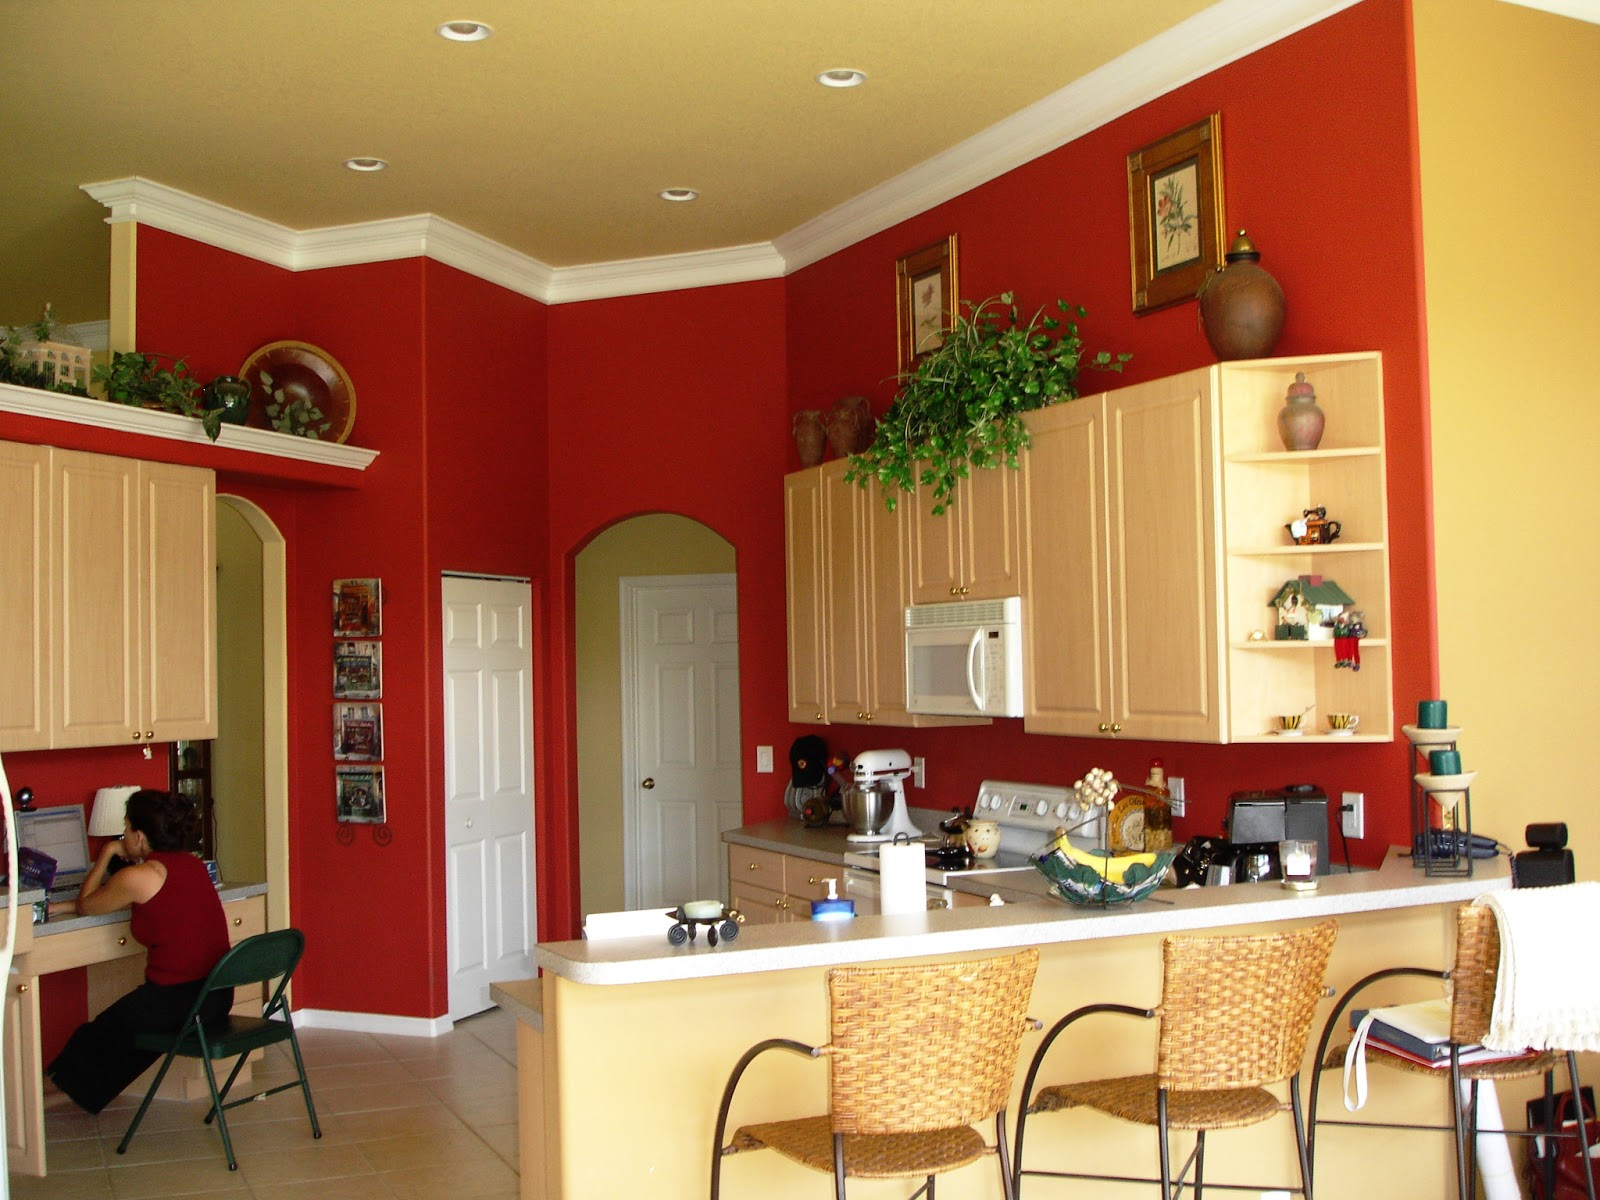 Accent Walls Paint Ideas Array Of Color Inc Ideas For Accent Walls